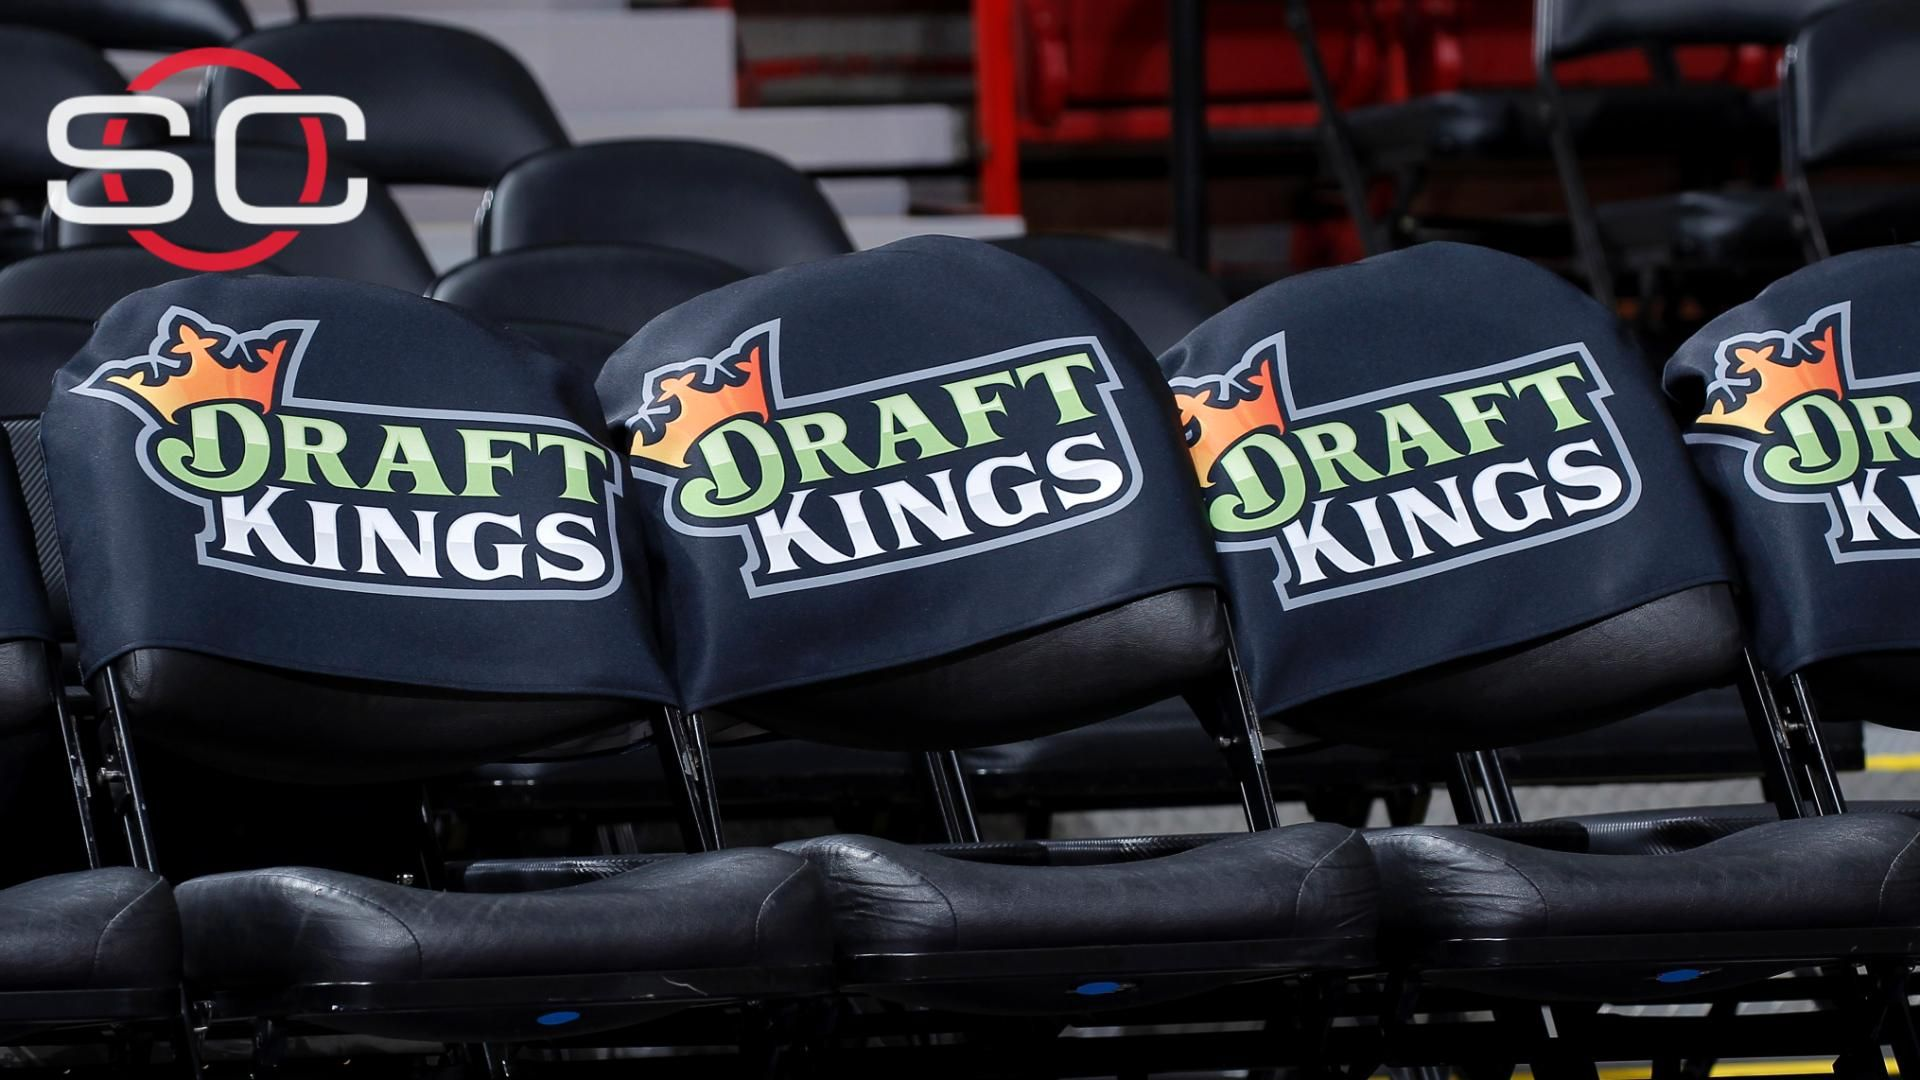 DraftKings looking to level the playing field